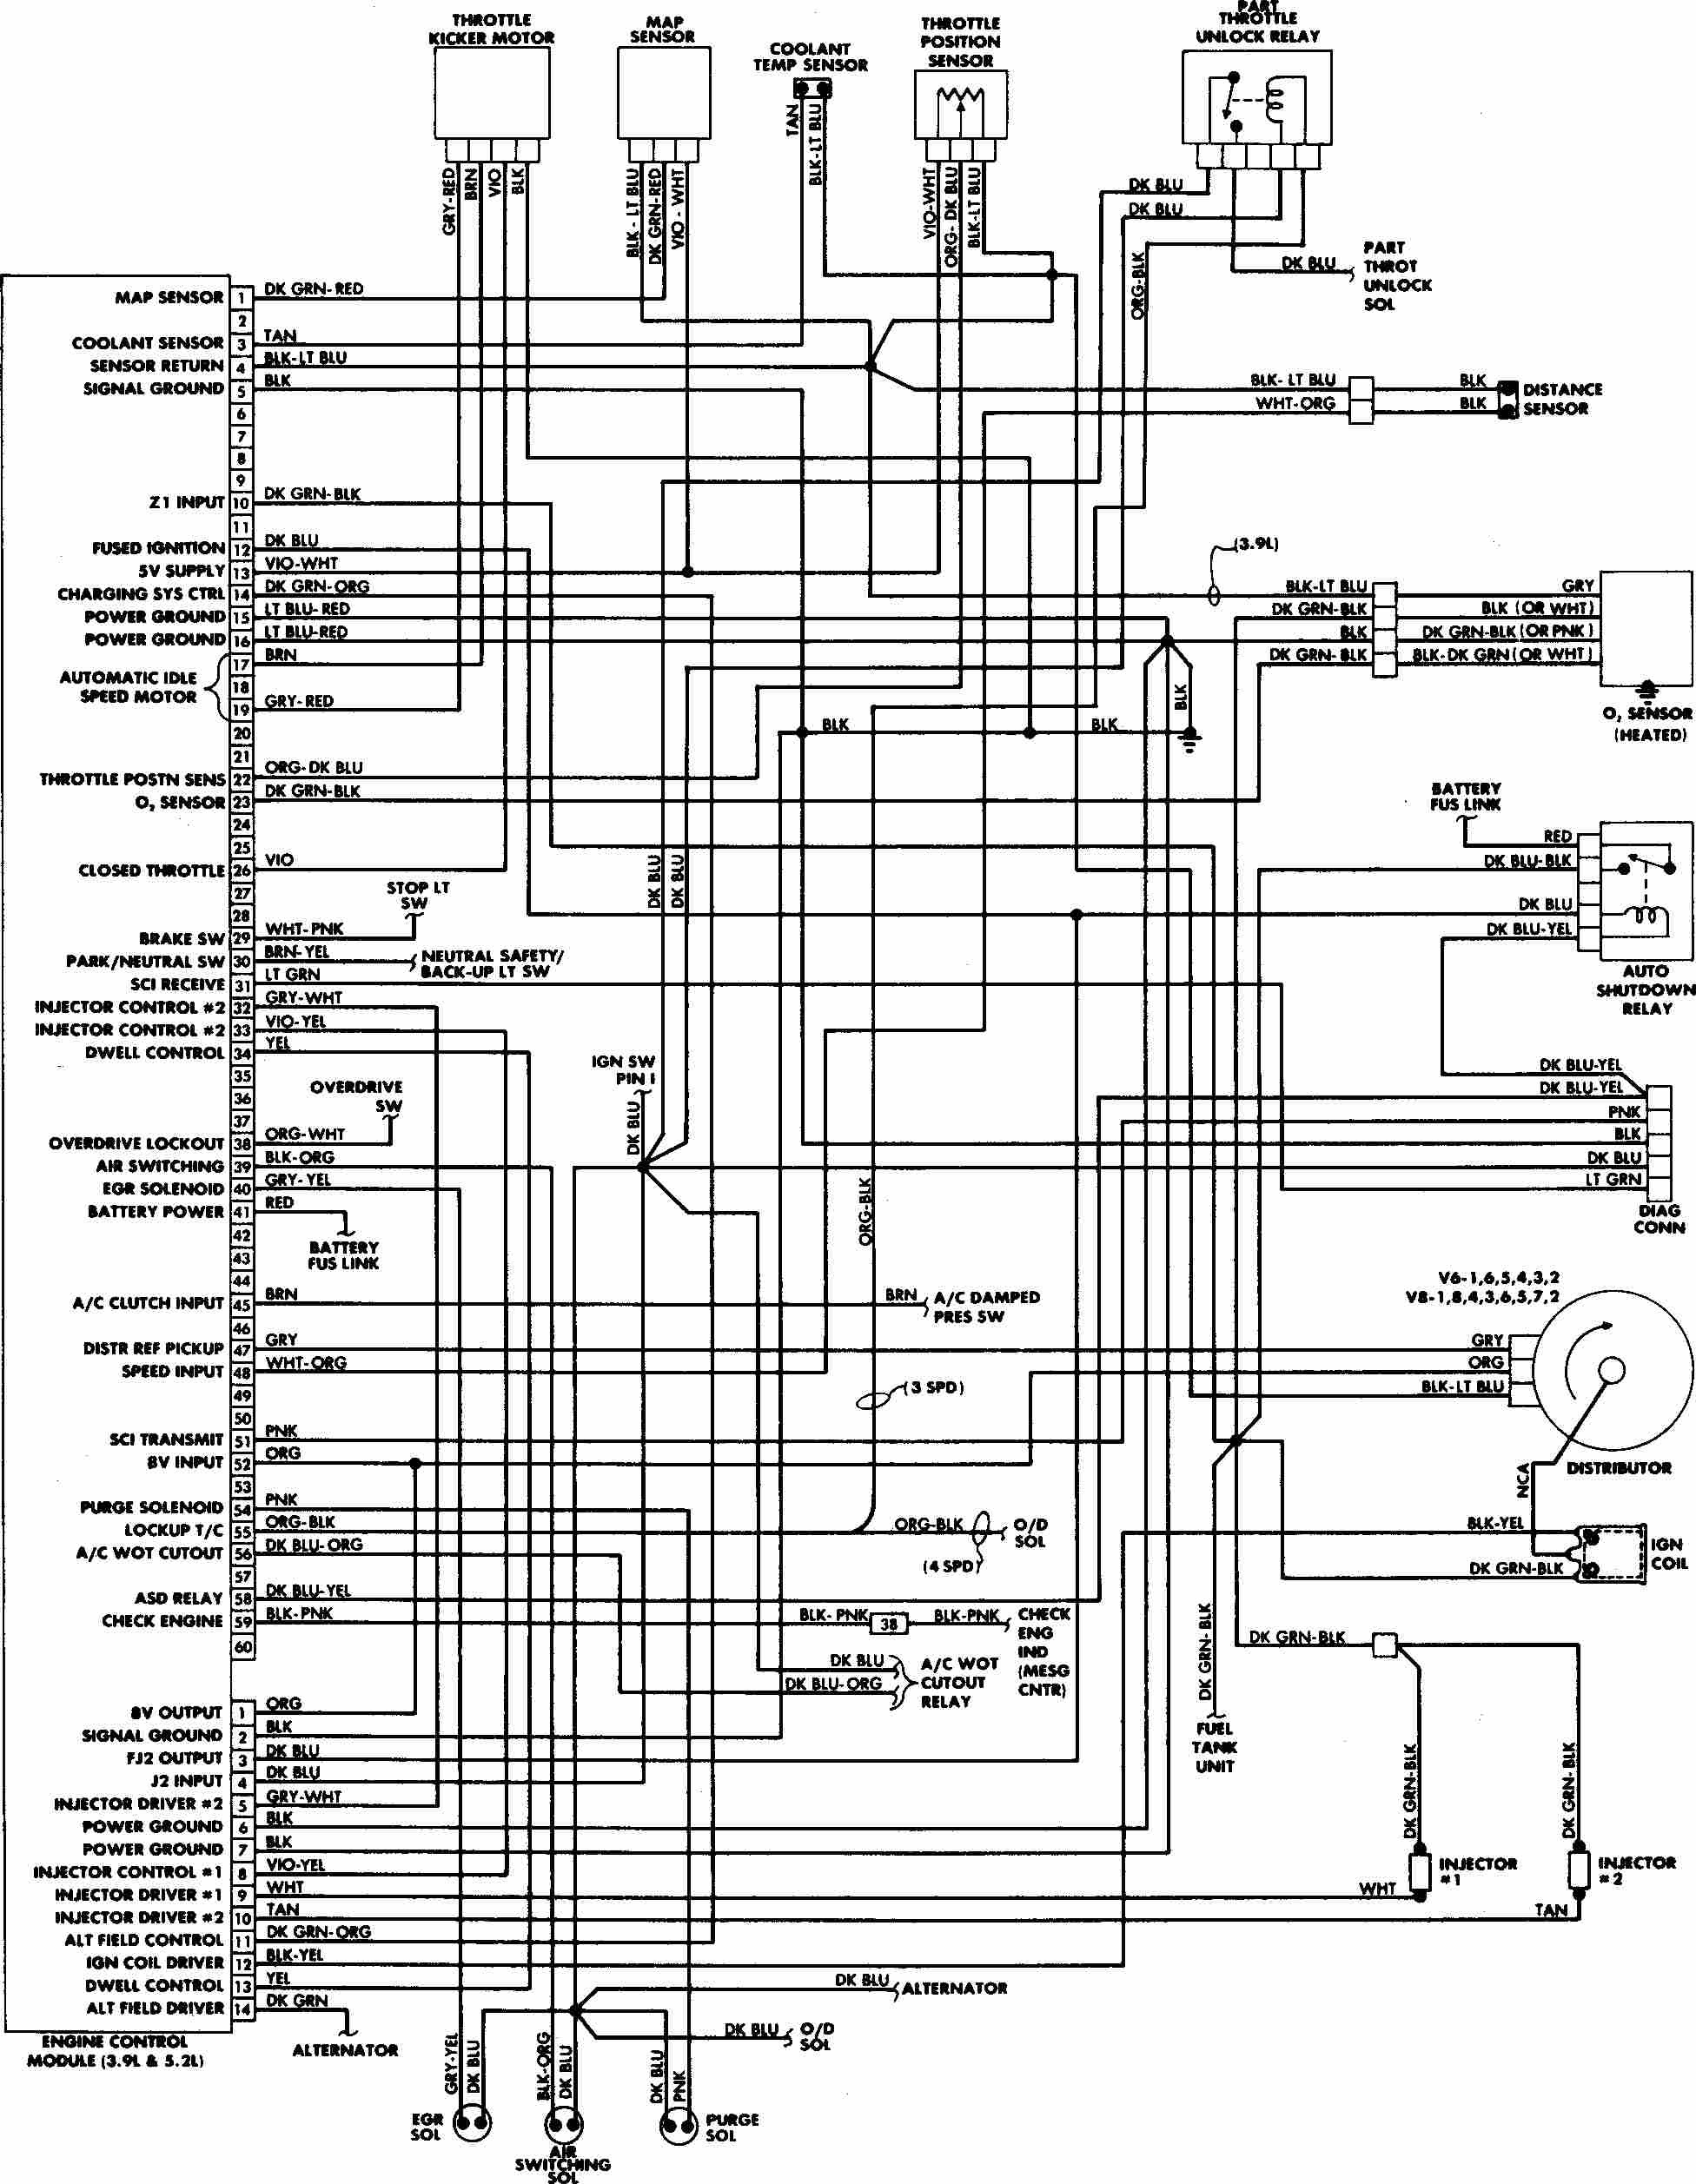 2001 3500 Silverado Tail Lights Wiring Diagram ...